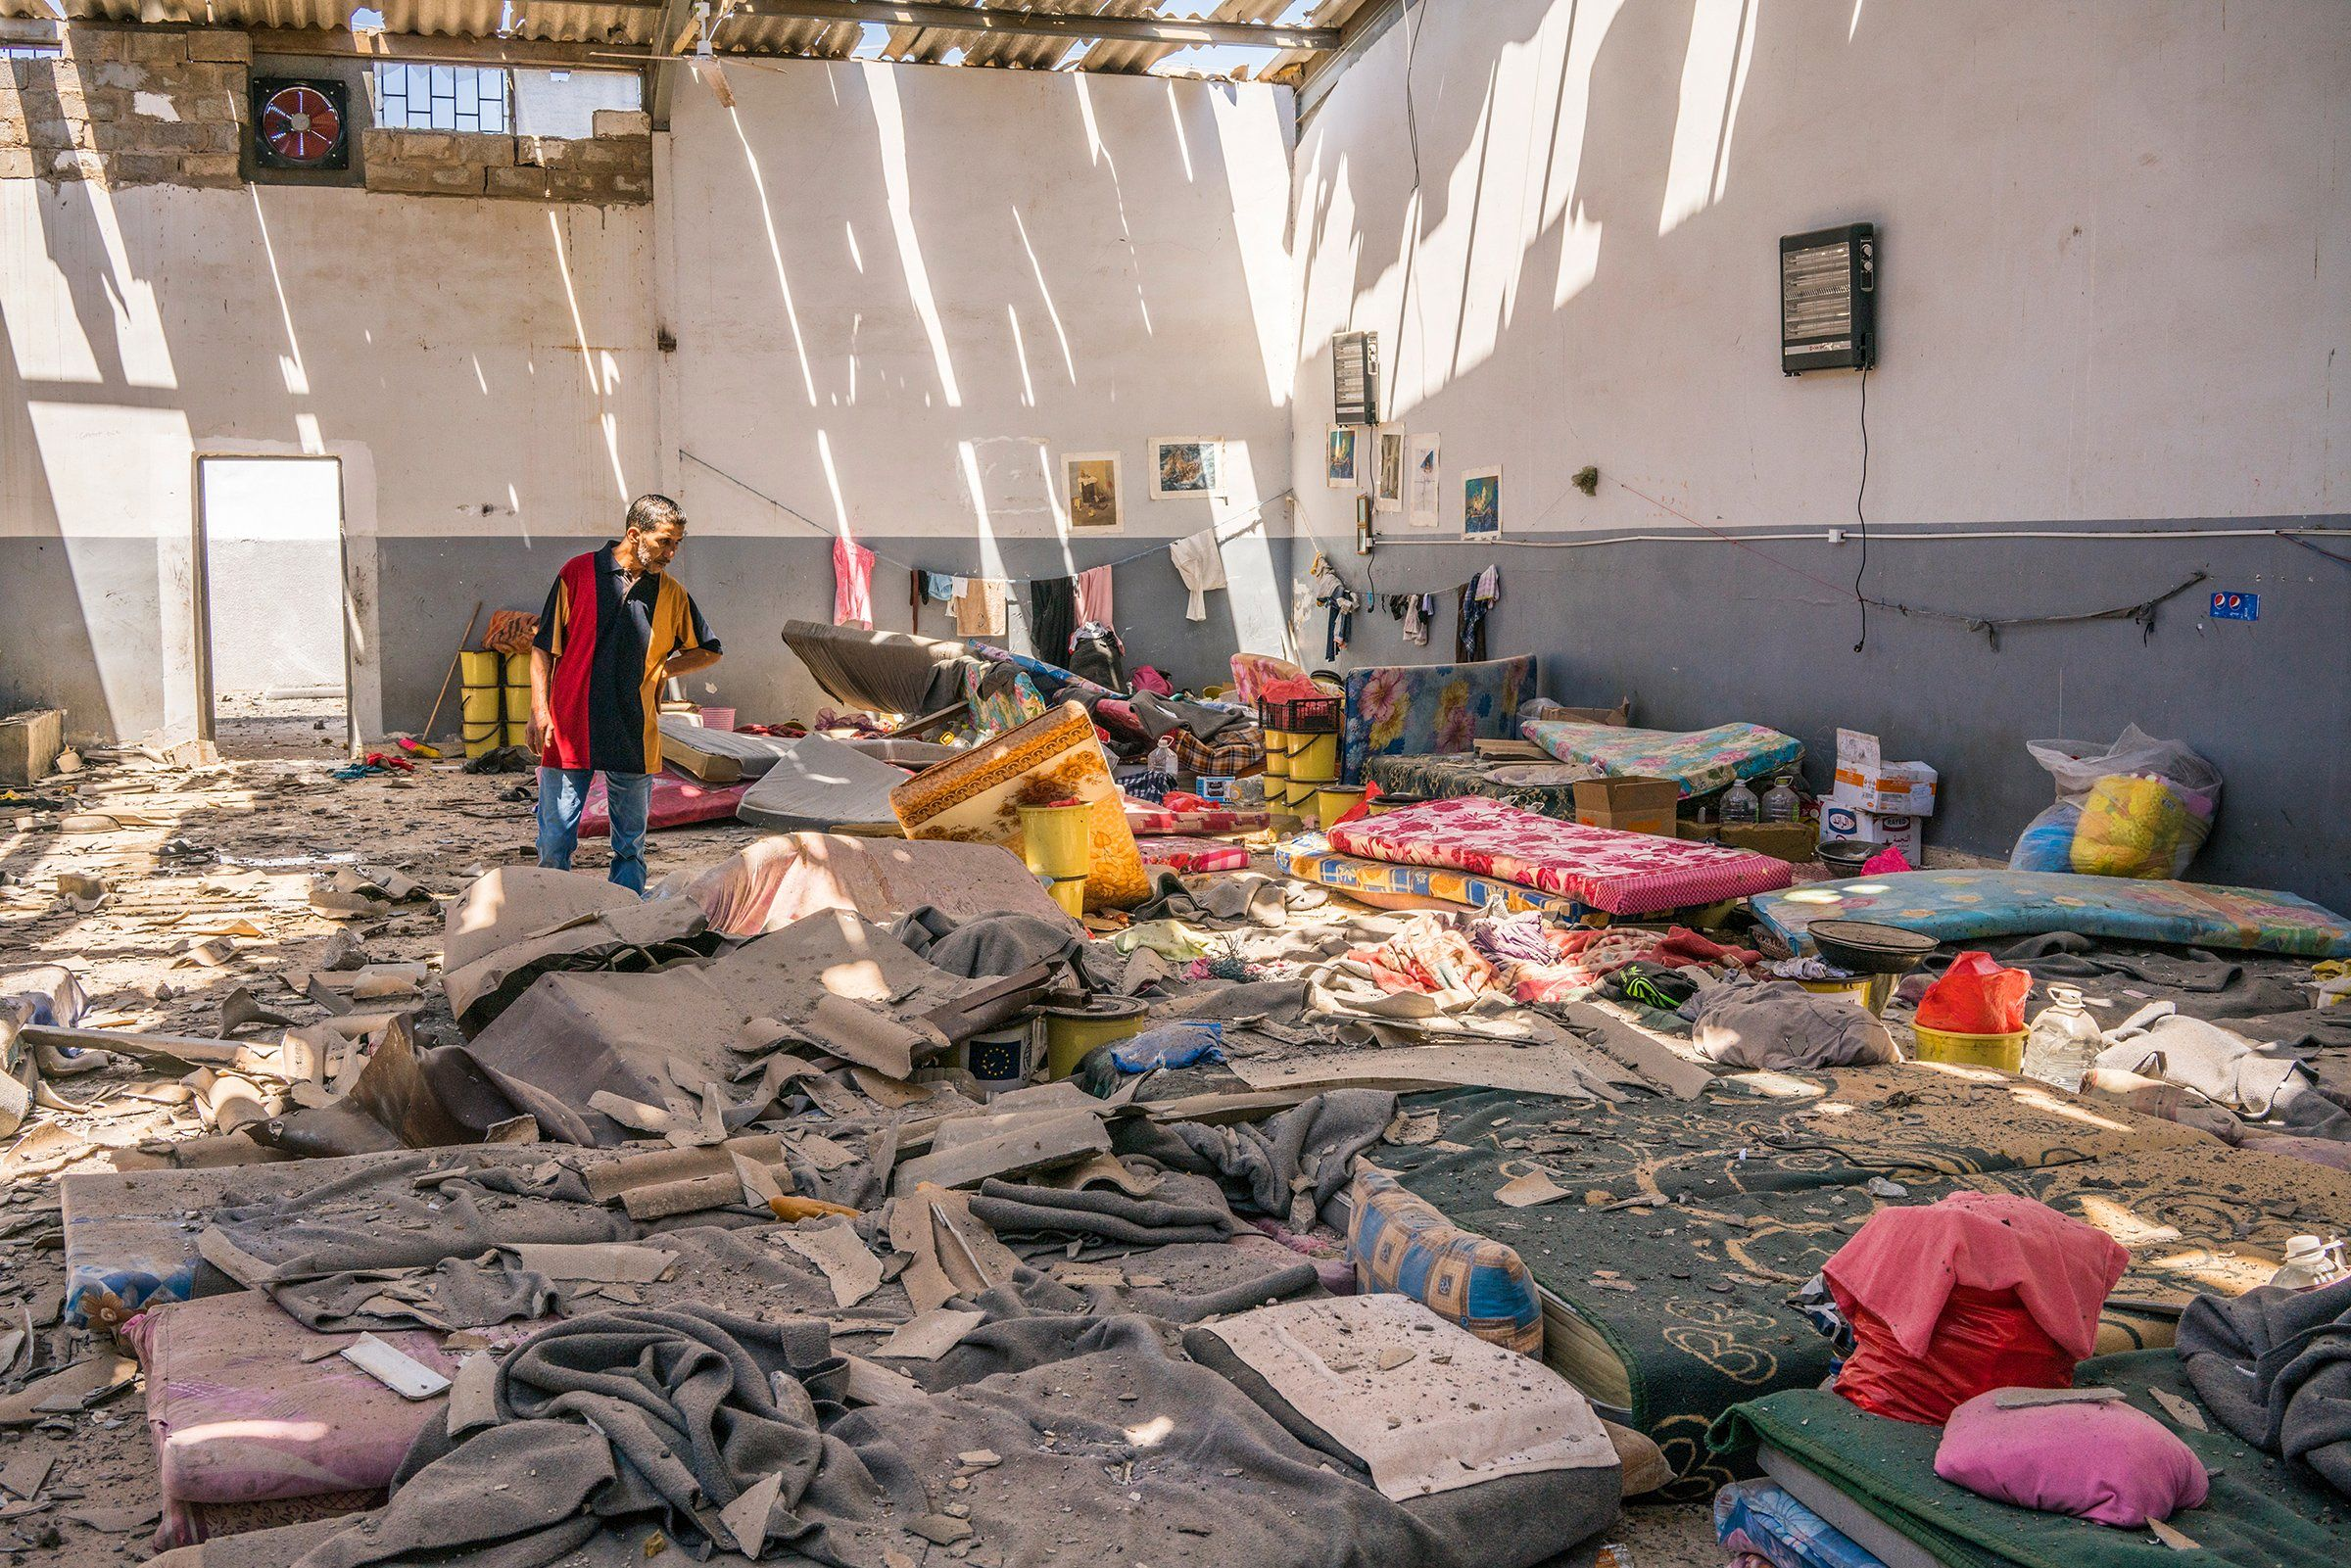 A man inspects damage to an area where migrants slept inside the Tajoura detention center near Tripoli, Libya, on July 3. An early morning airstrike there killed dozens.